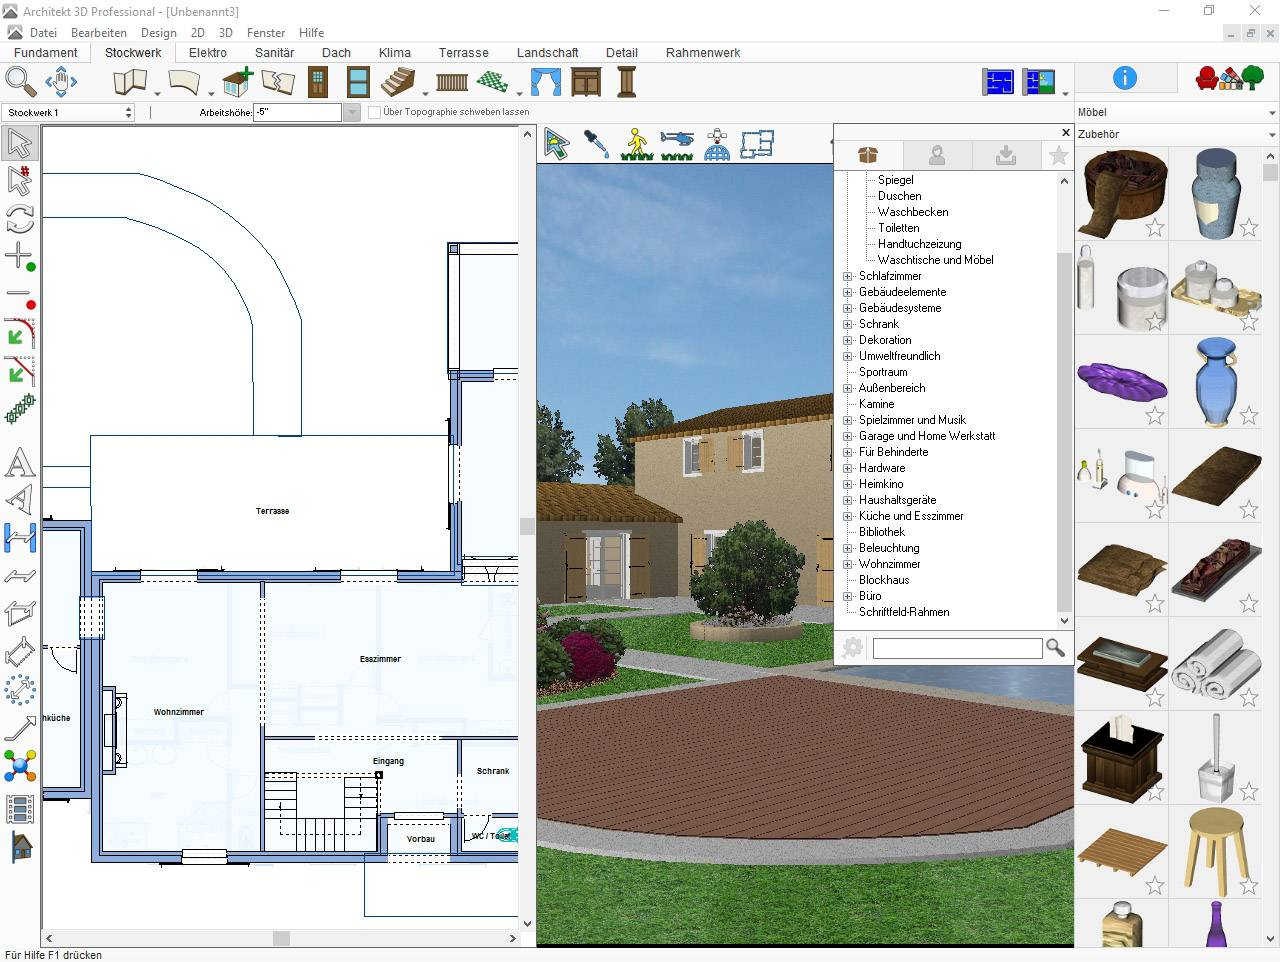 3d Architekt Avanquest Architekt 3d 20 Professional Vollversion 1 Lizenz Windows Planungs Software